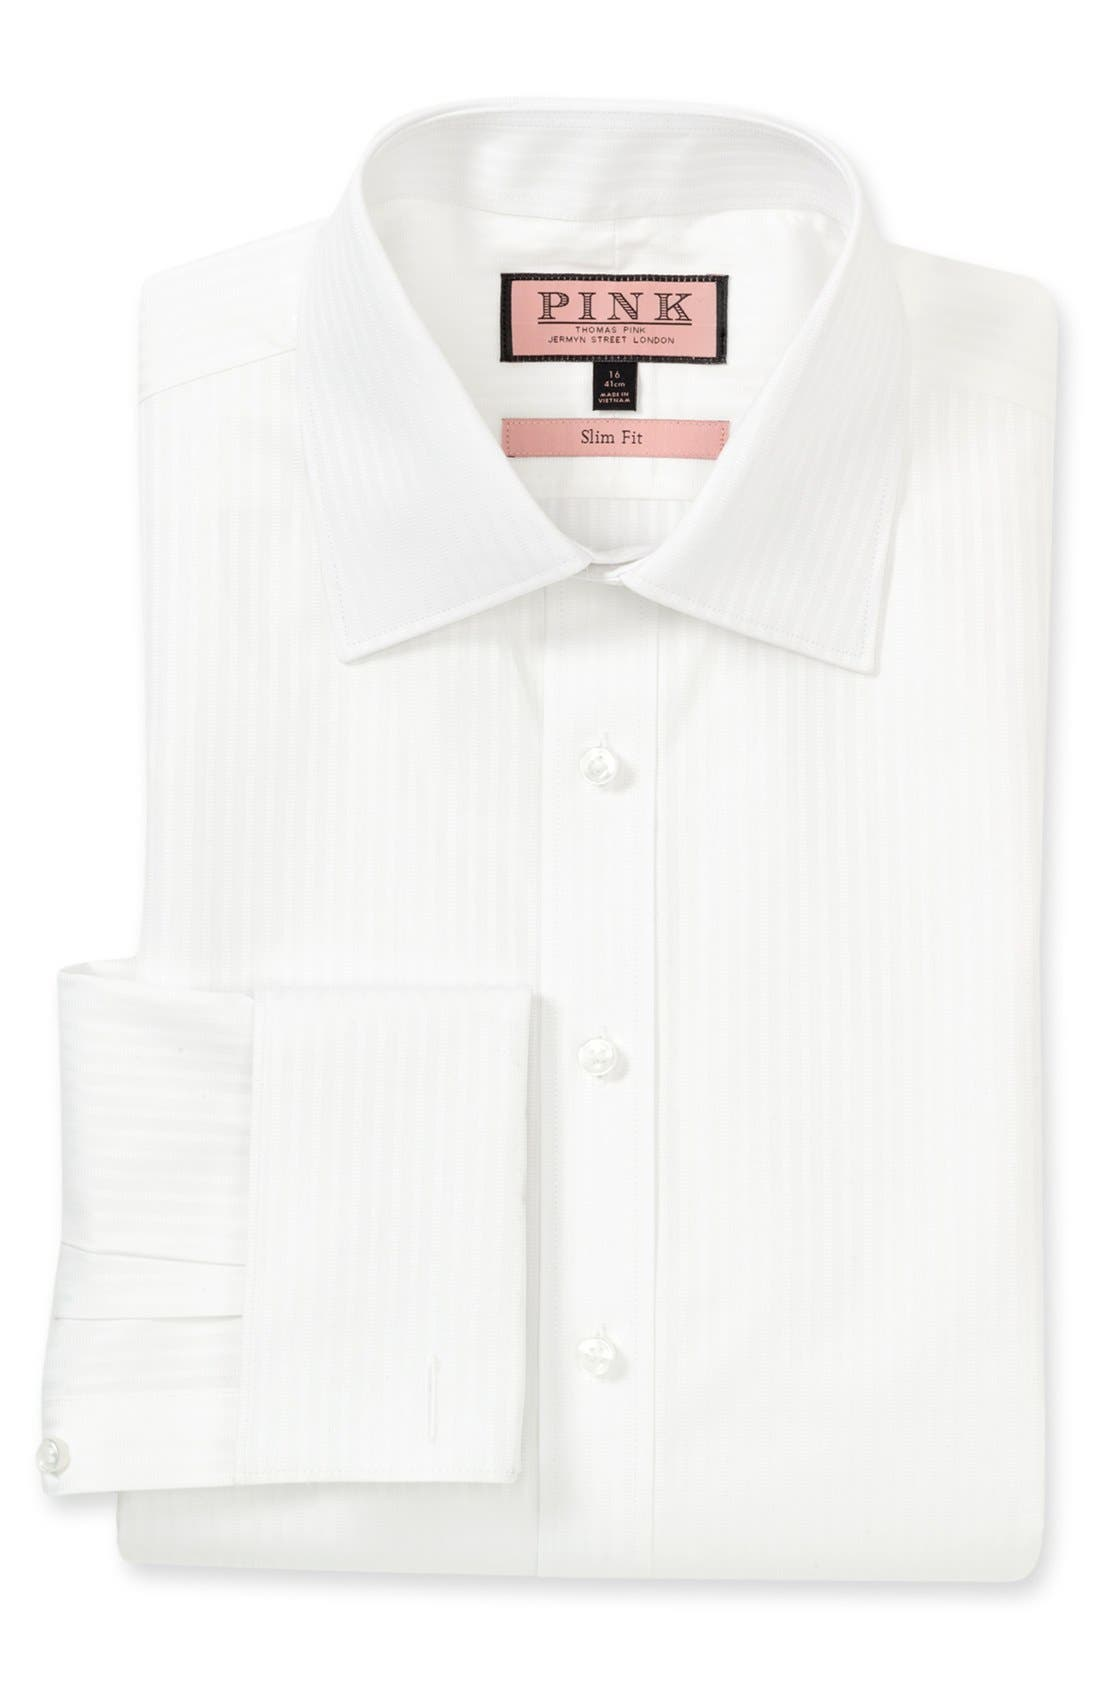 Alternate Image 1 Selected - Thomas Pink 'Steve' Stripe Cotton Slim Fit Dress Shirt